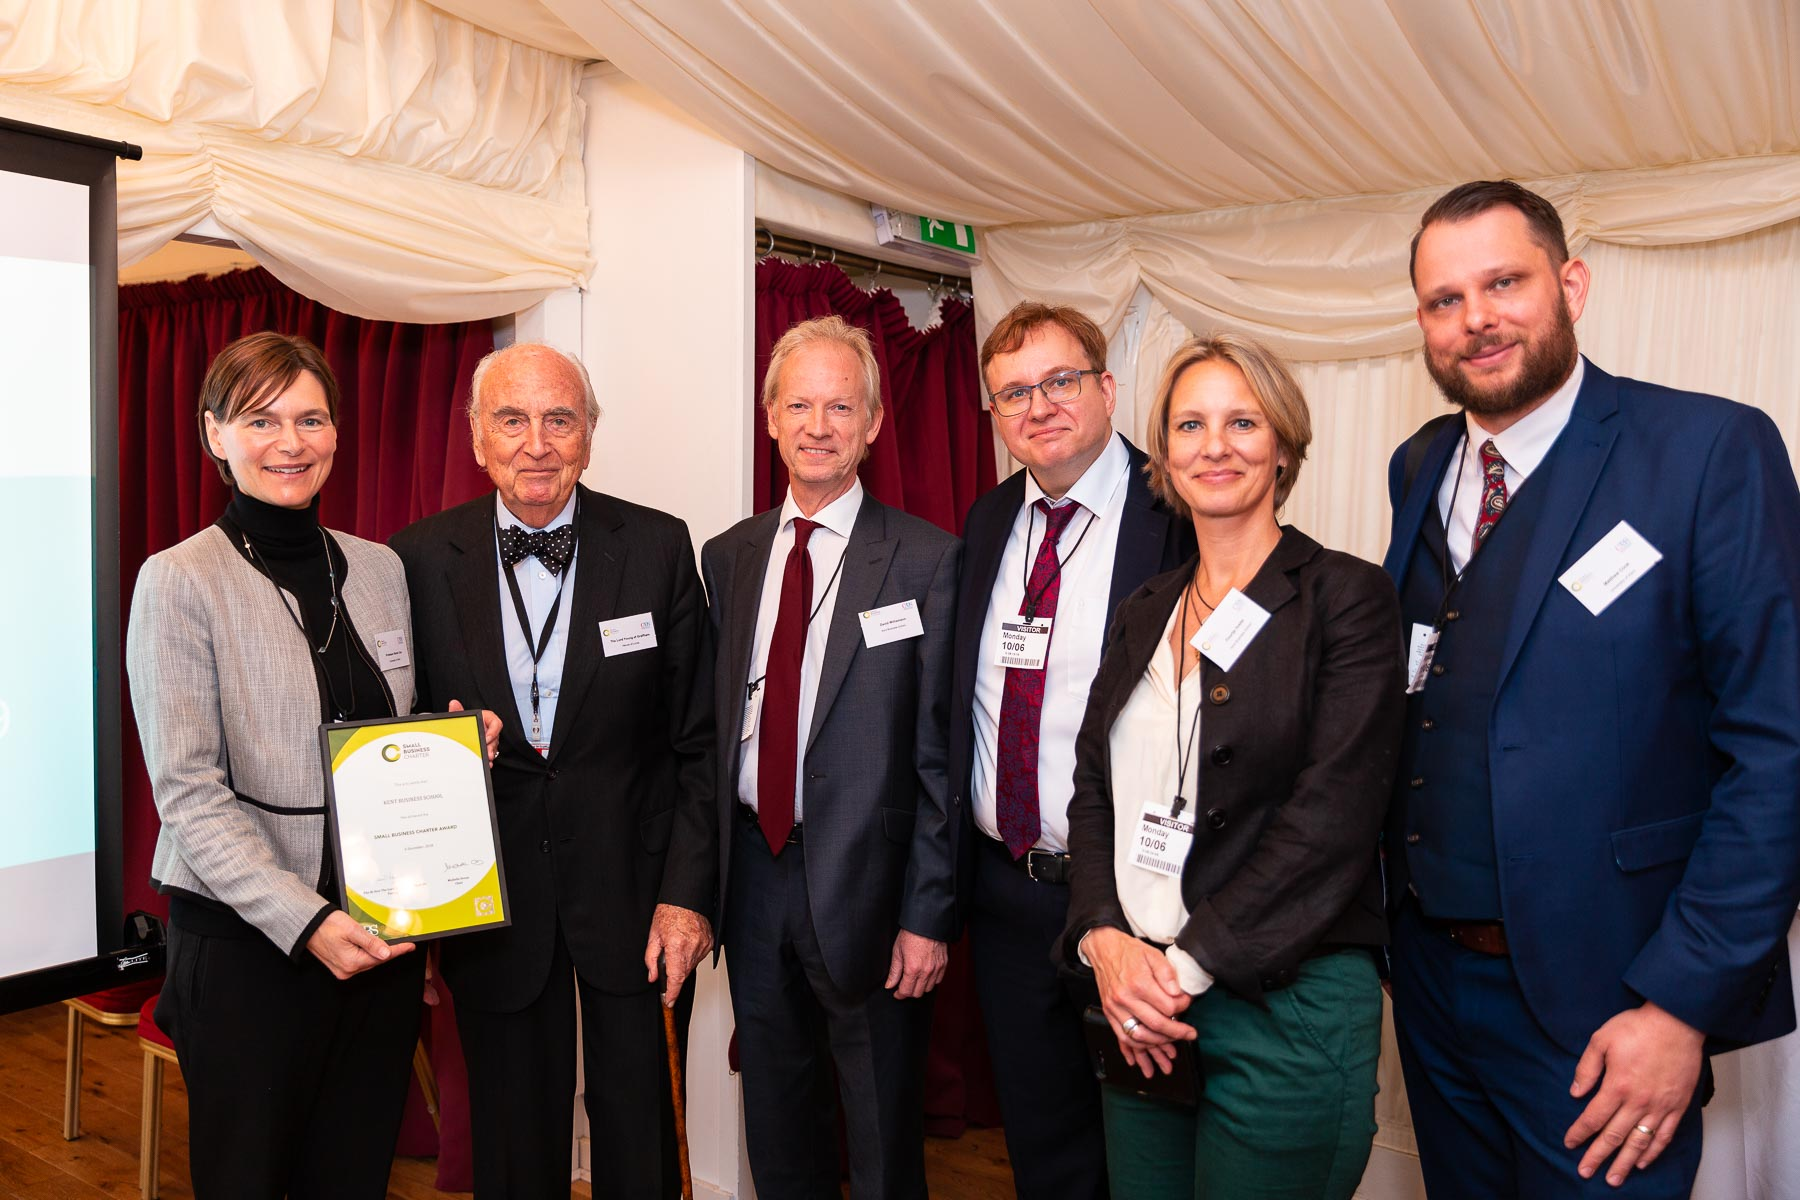 The University officially received its Small Business Charter award from Lord Young at the House of Lords.